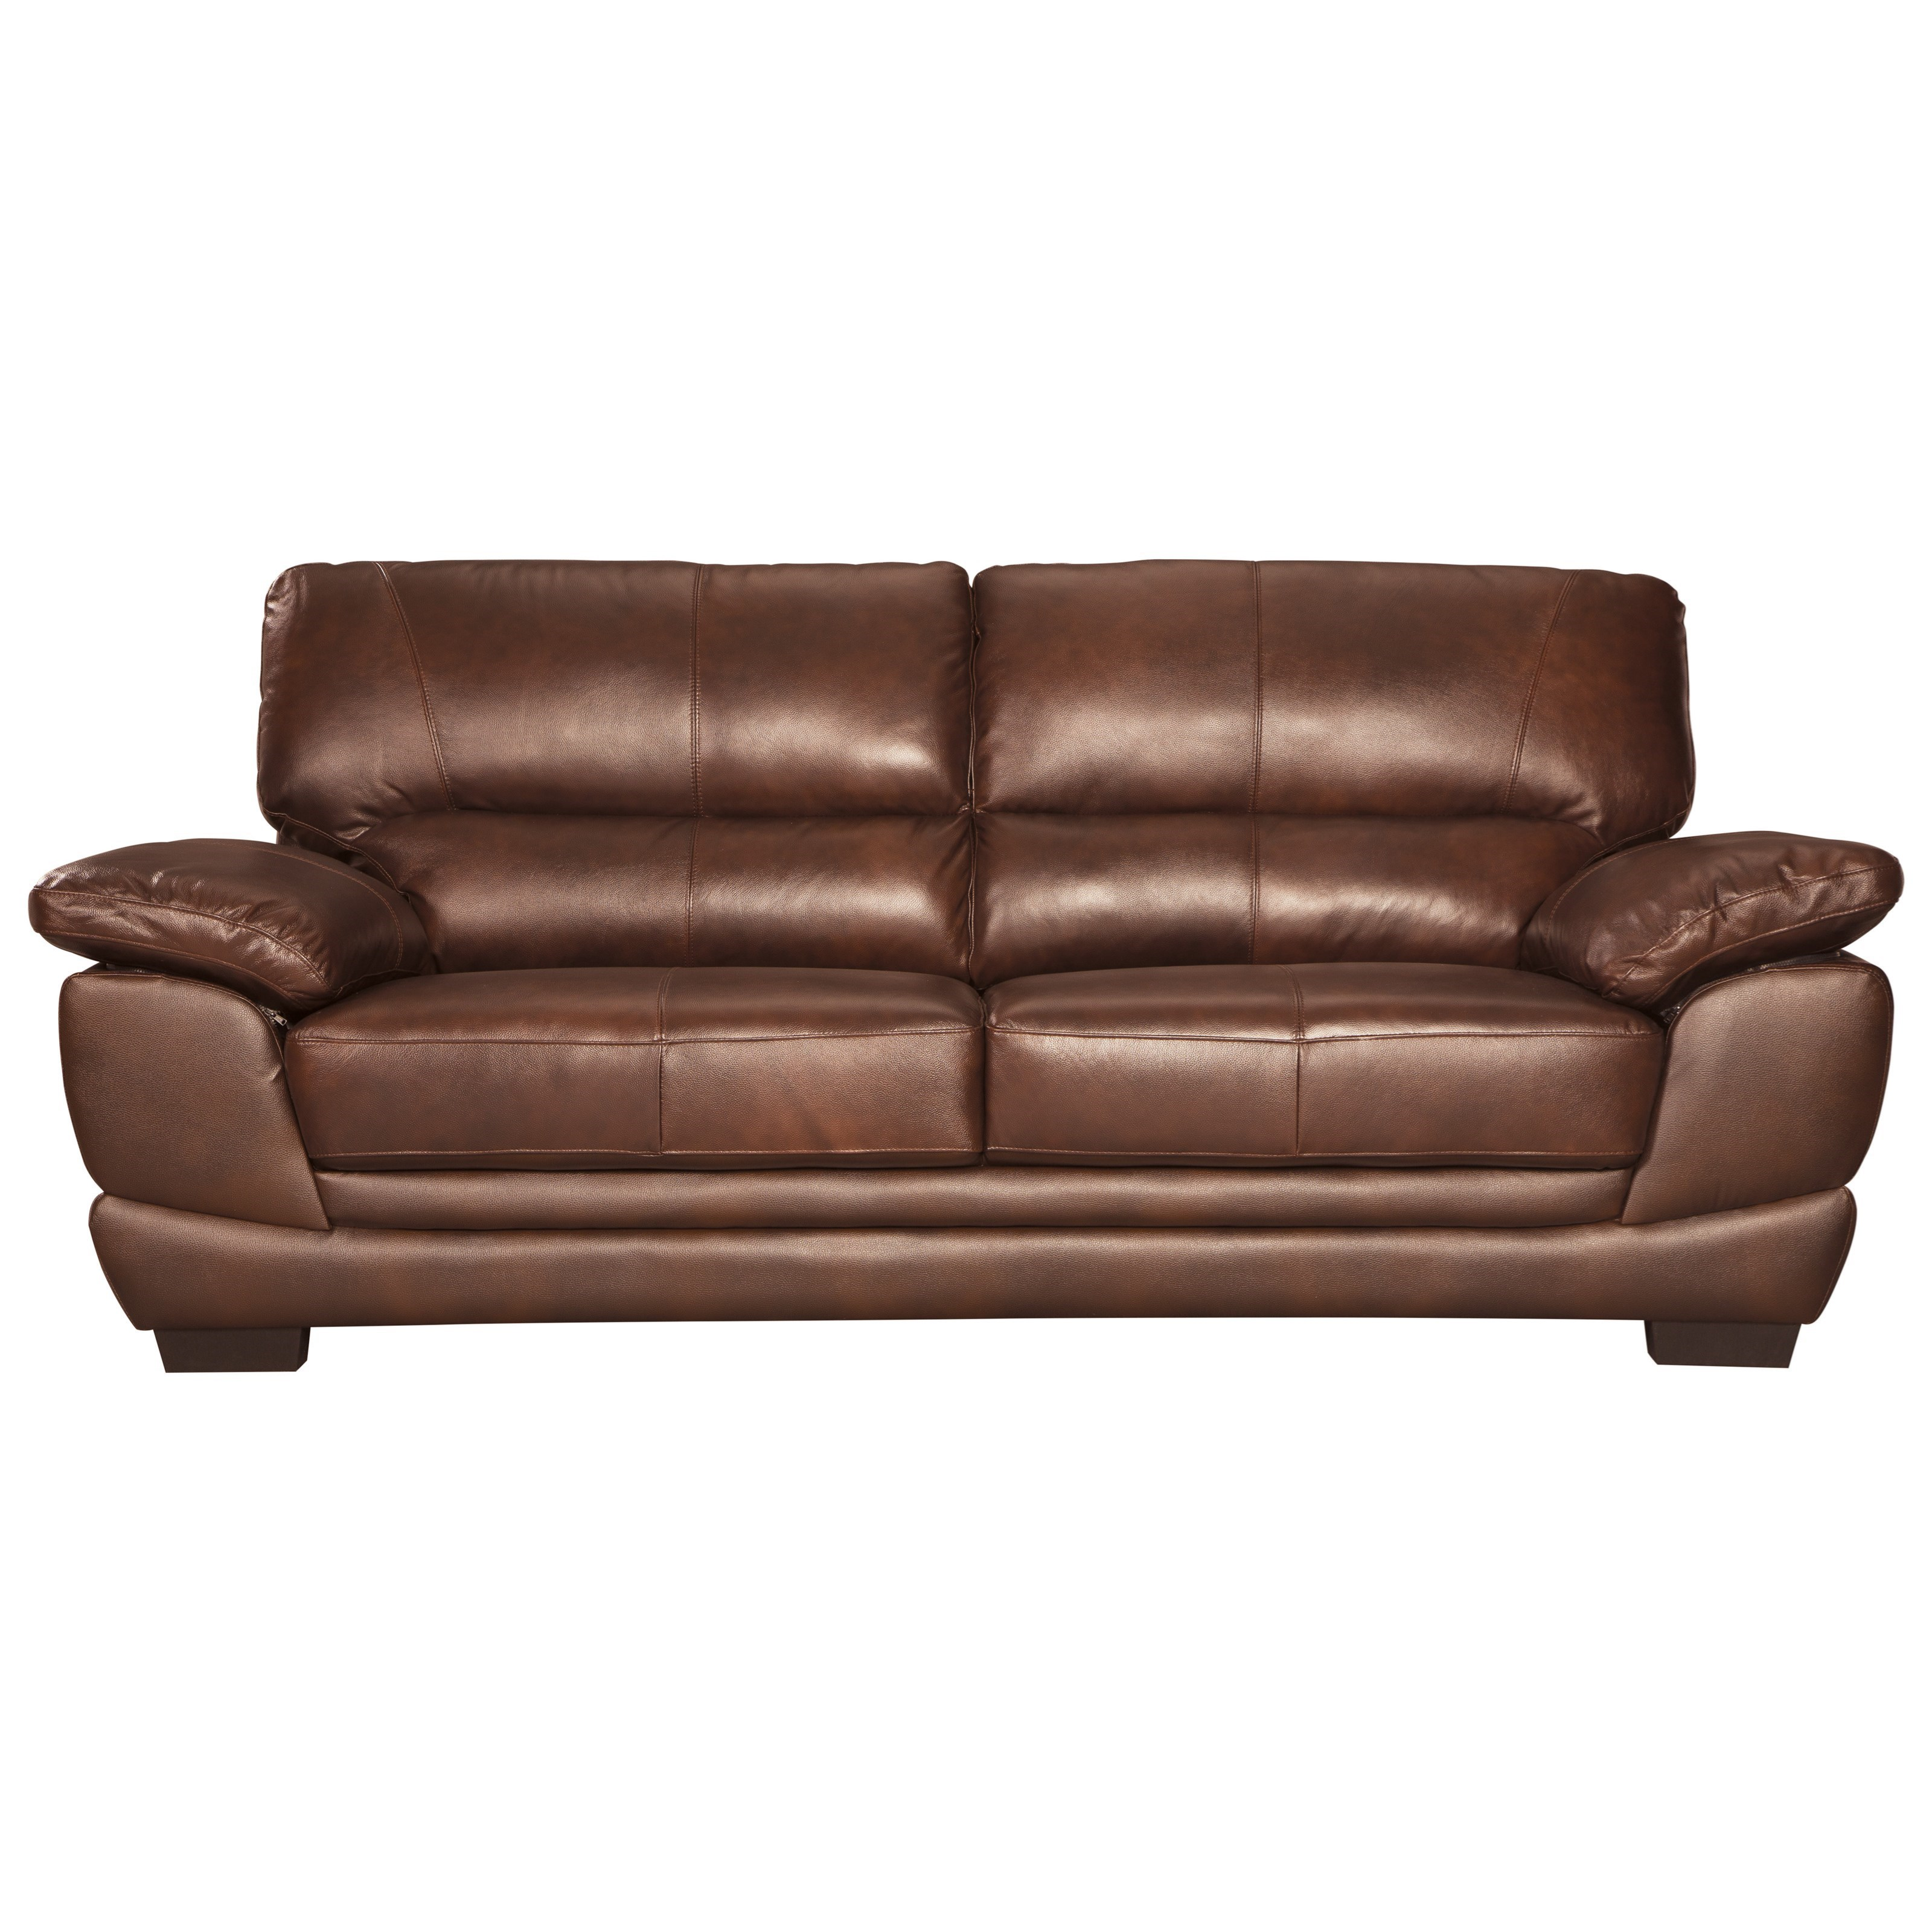 Signature Design by Ashley Fontenot Sofa - Item Number: 1220438